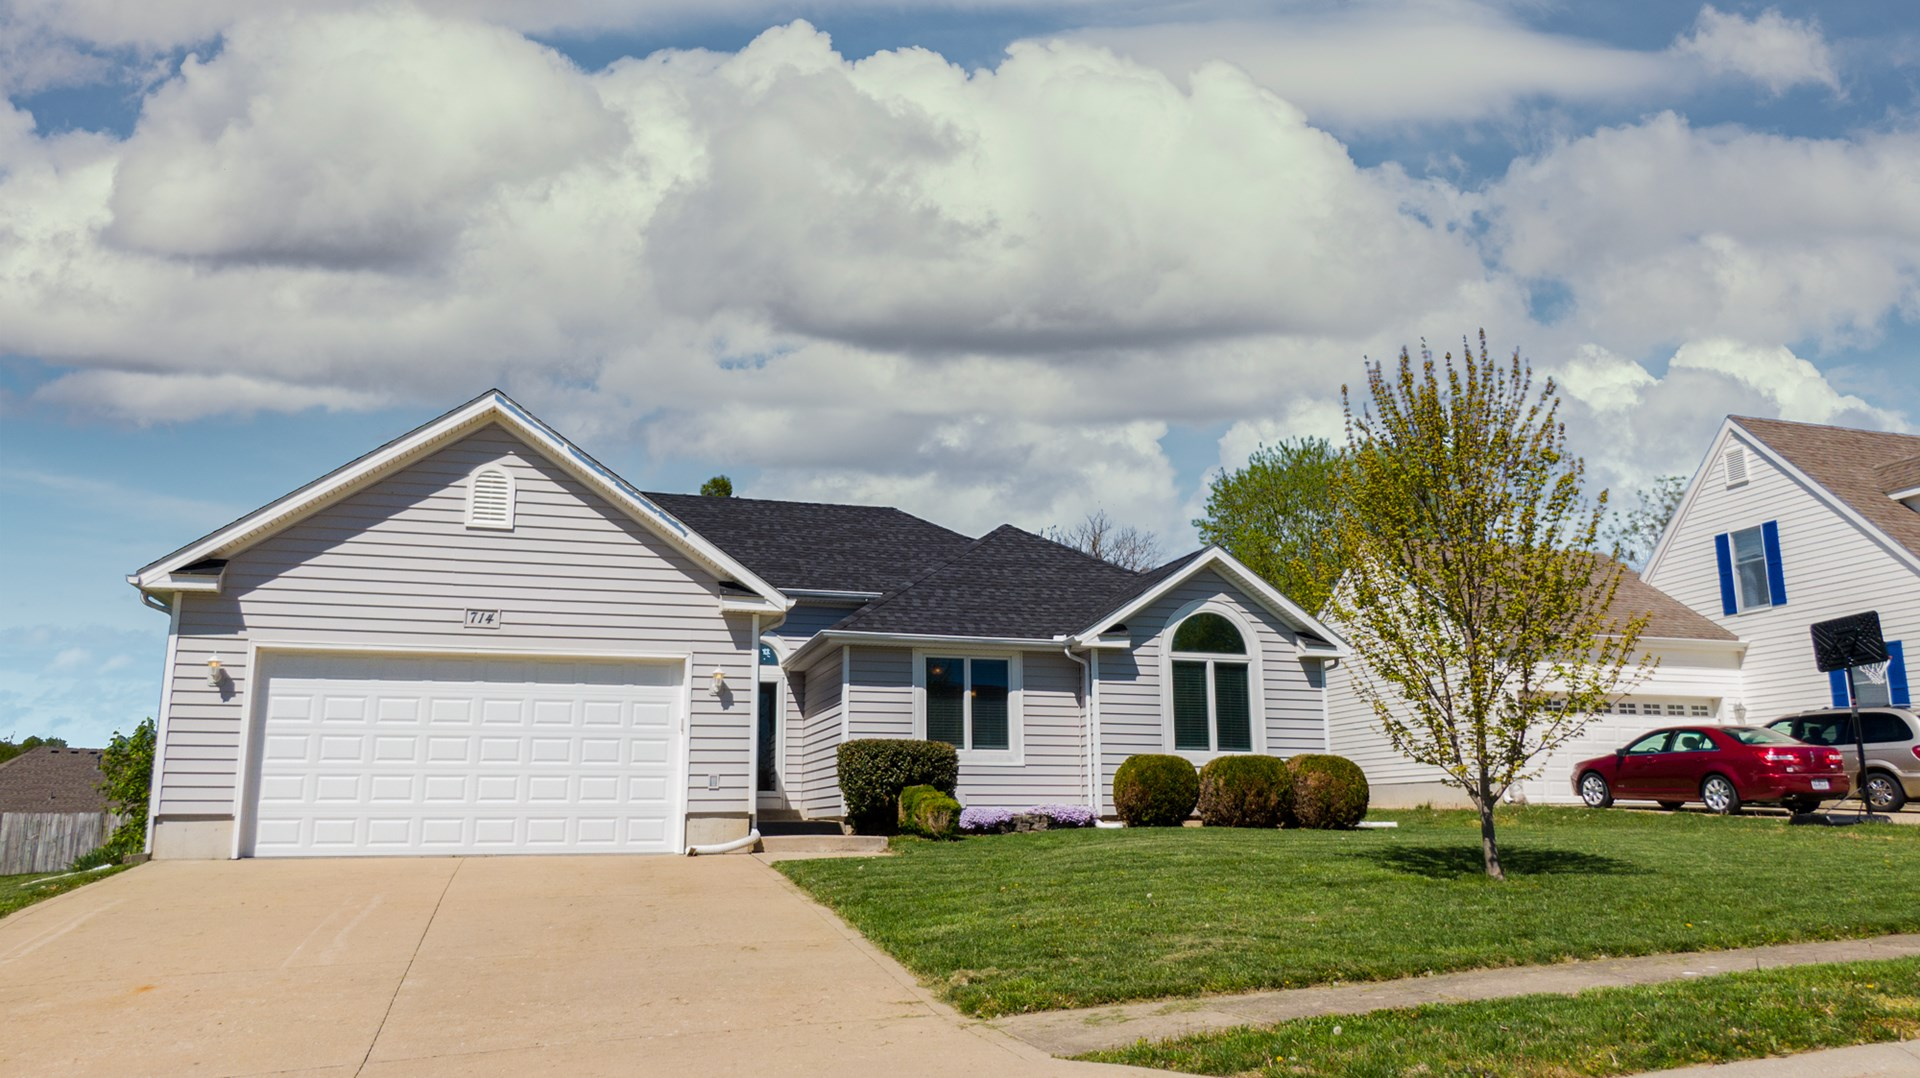 Brookside Subdivision Home For Sale, Warrensburg MO